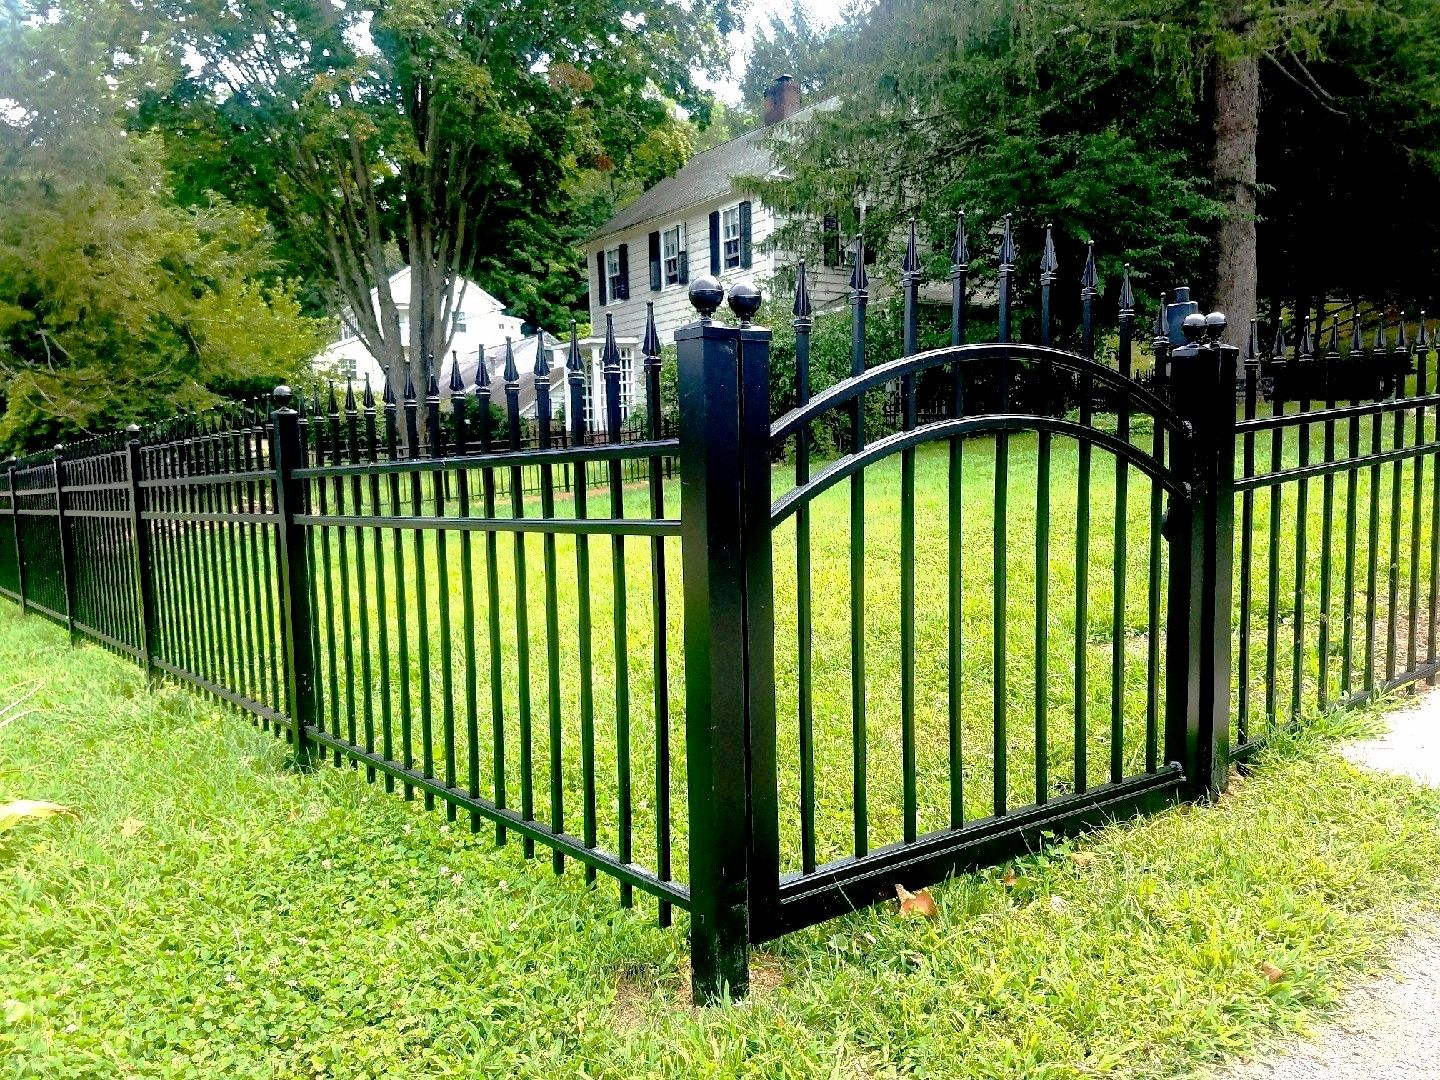 Aluminum Fences-Palm Beach Fence Pros Installation & Replacement-We do Residential & Commercial Fence Installation, Fencing Repairs and Replacements, Fence Designs, Gate Installations, Pool Fencing, Balcony Railings, Privacy Fences, PVC Fences, Wood Pergola, Aluminum and Chain link, and more